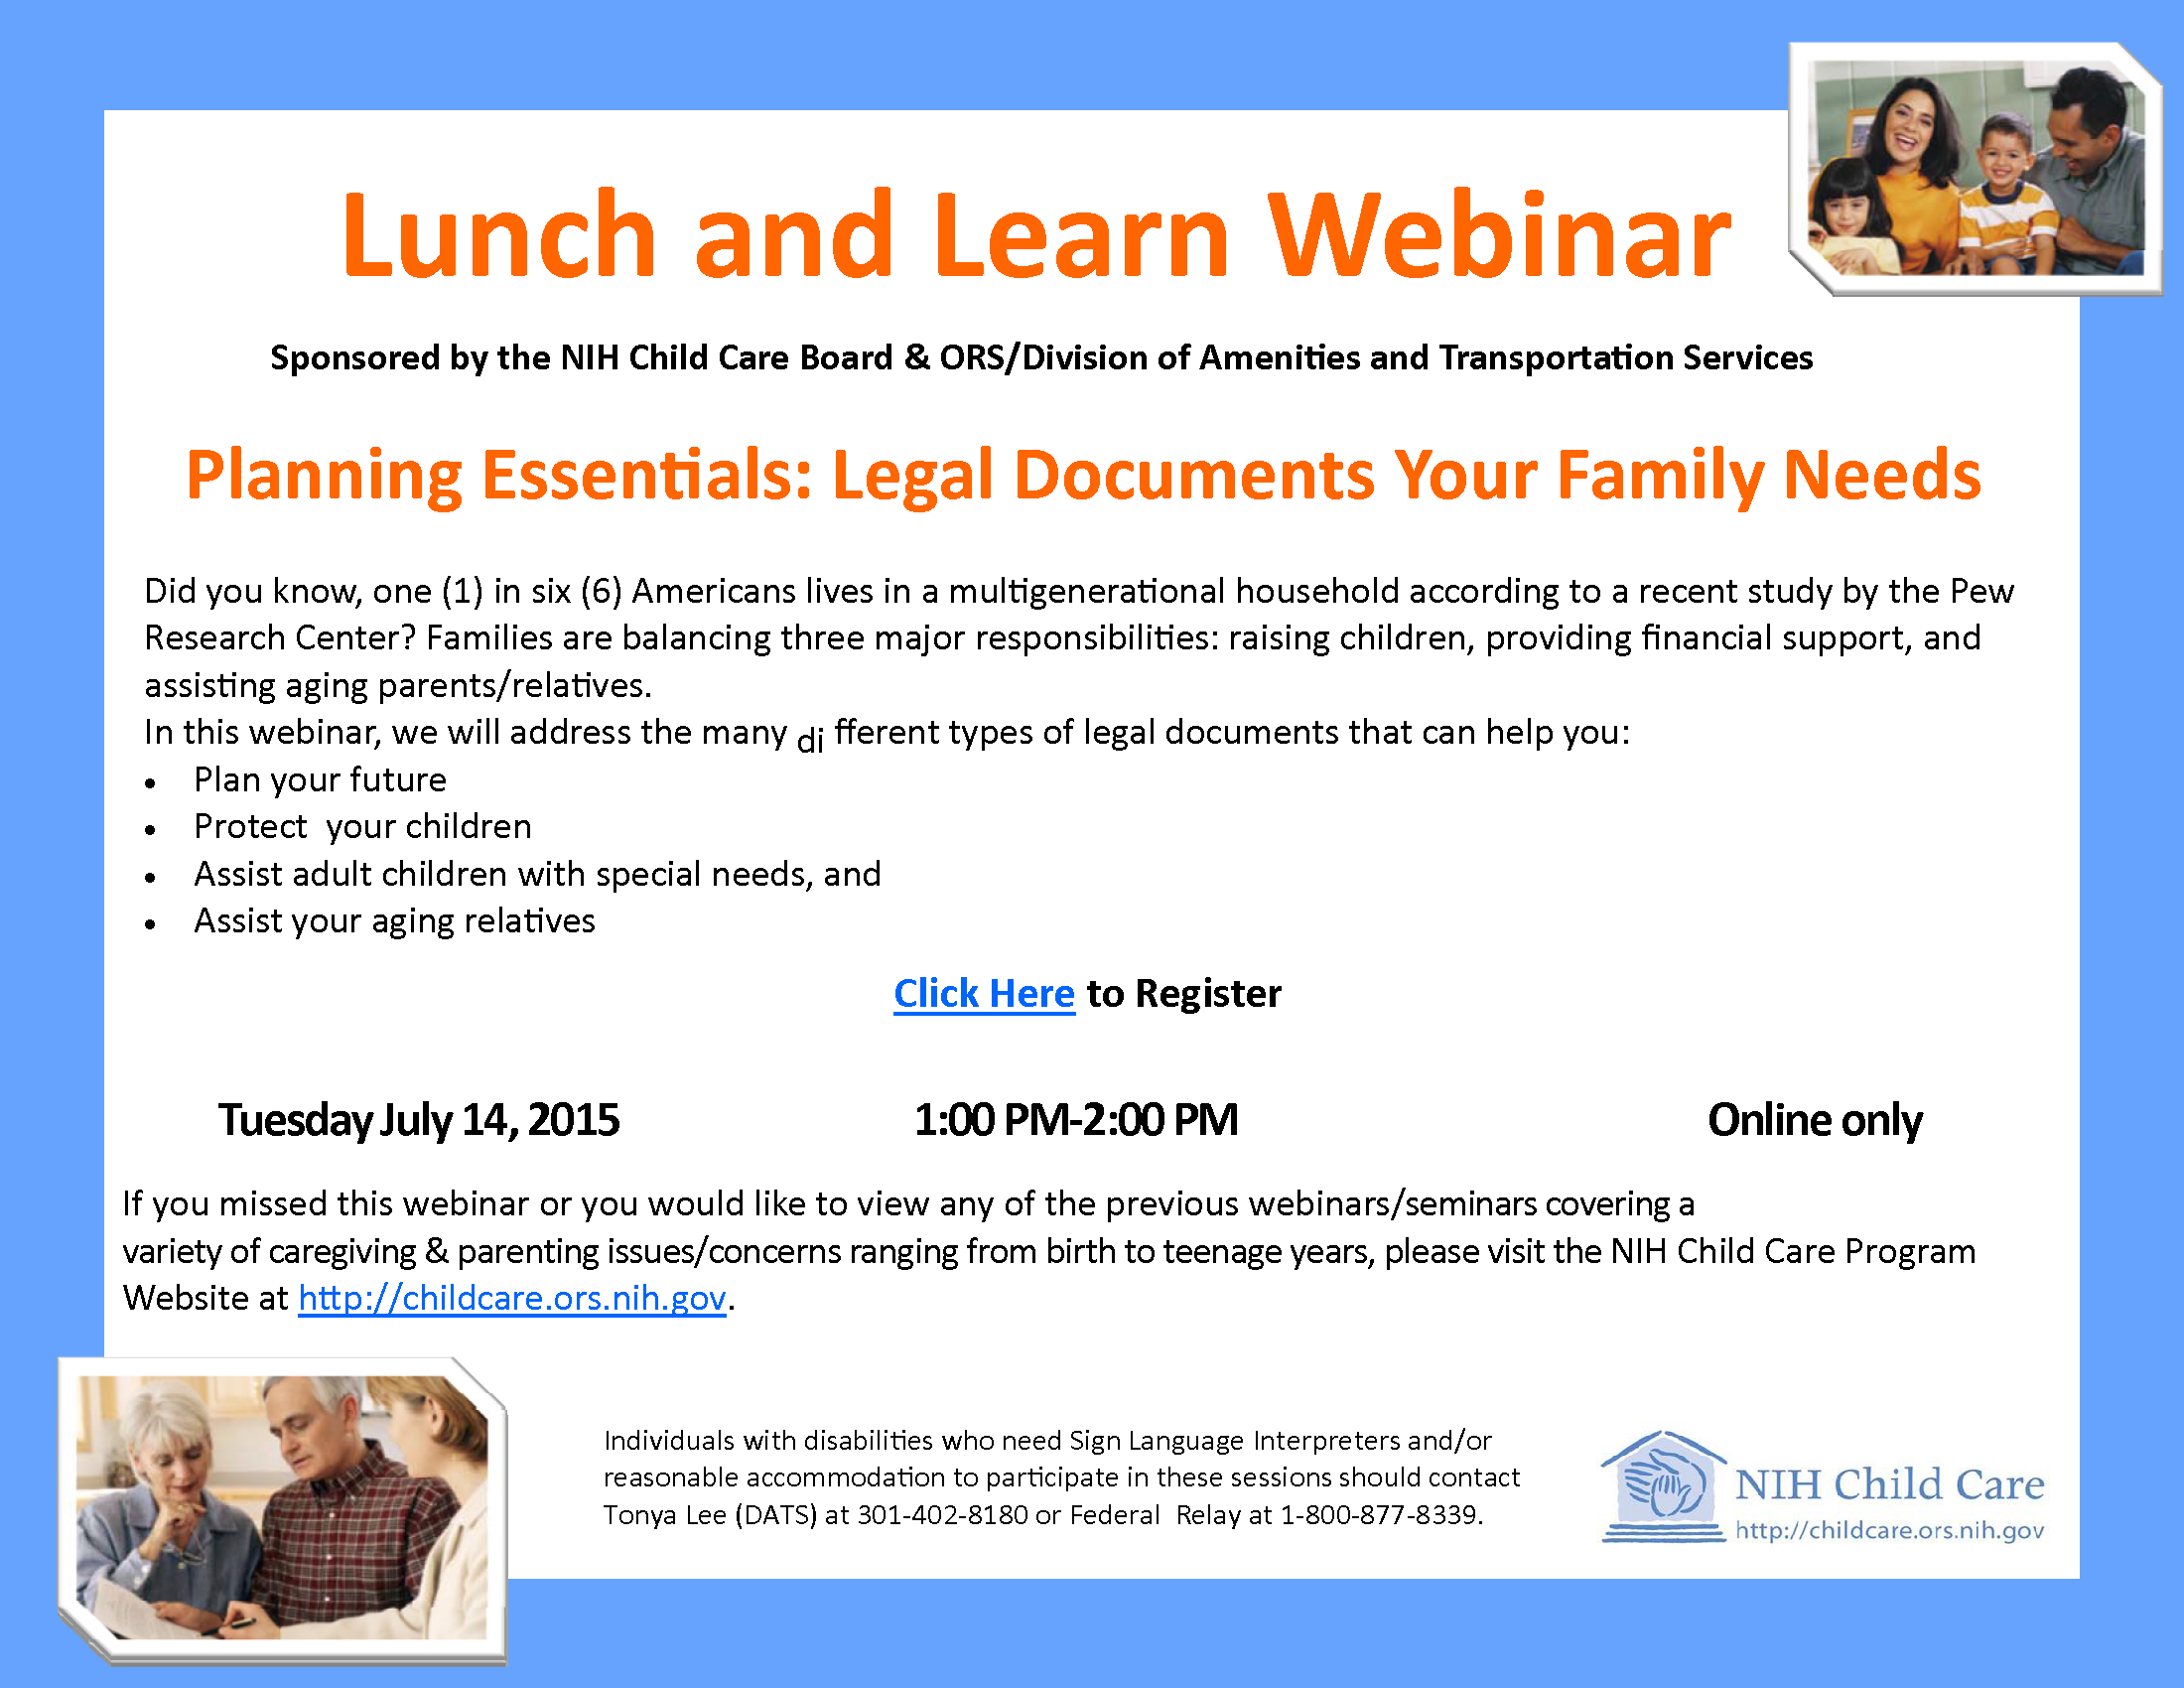 Lunch and Learn Webinar Event Flyer